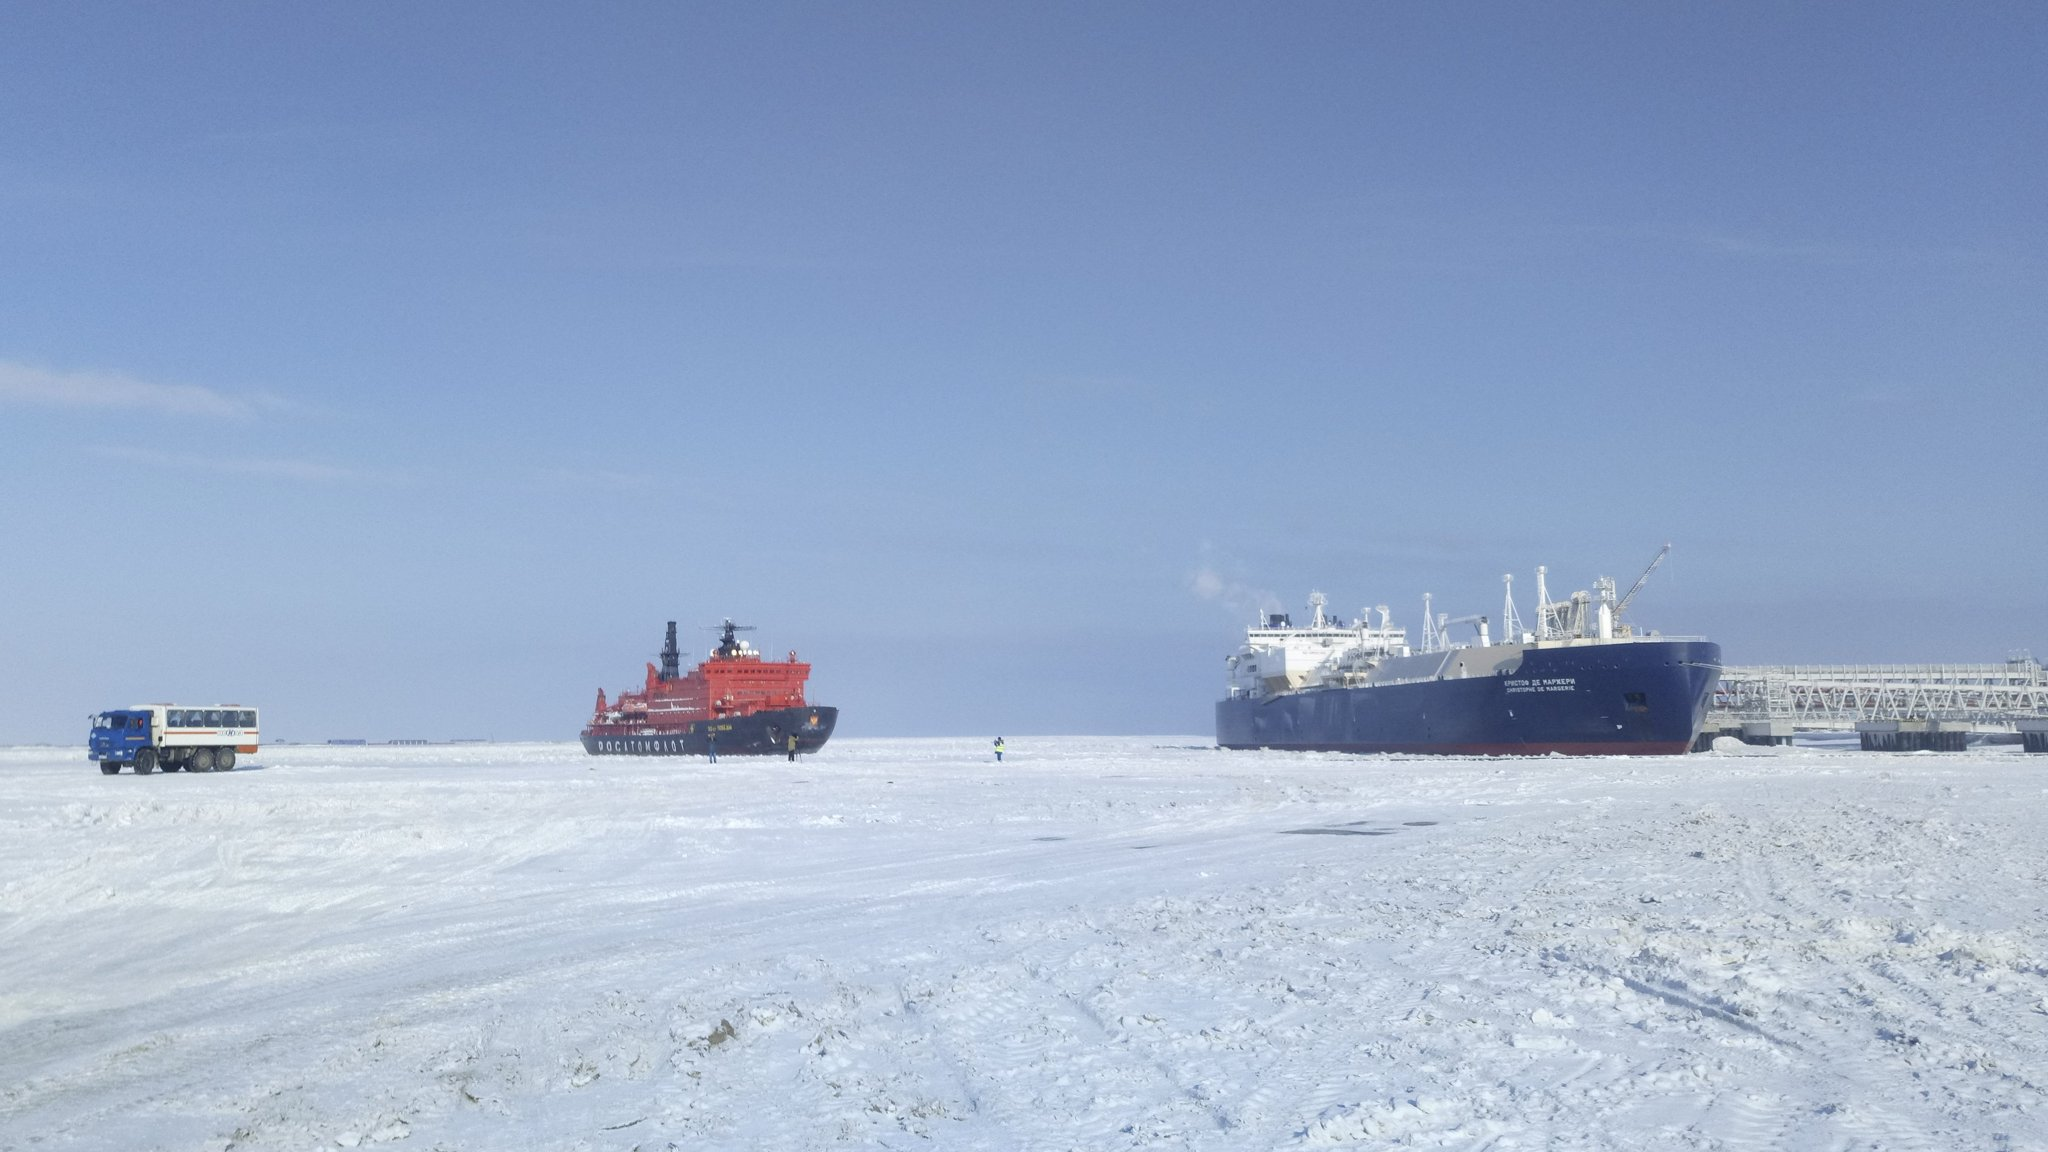 China reveals Arctic ambitions with plan for 'Polar Silk